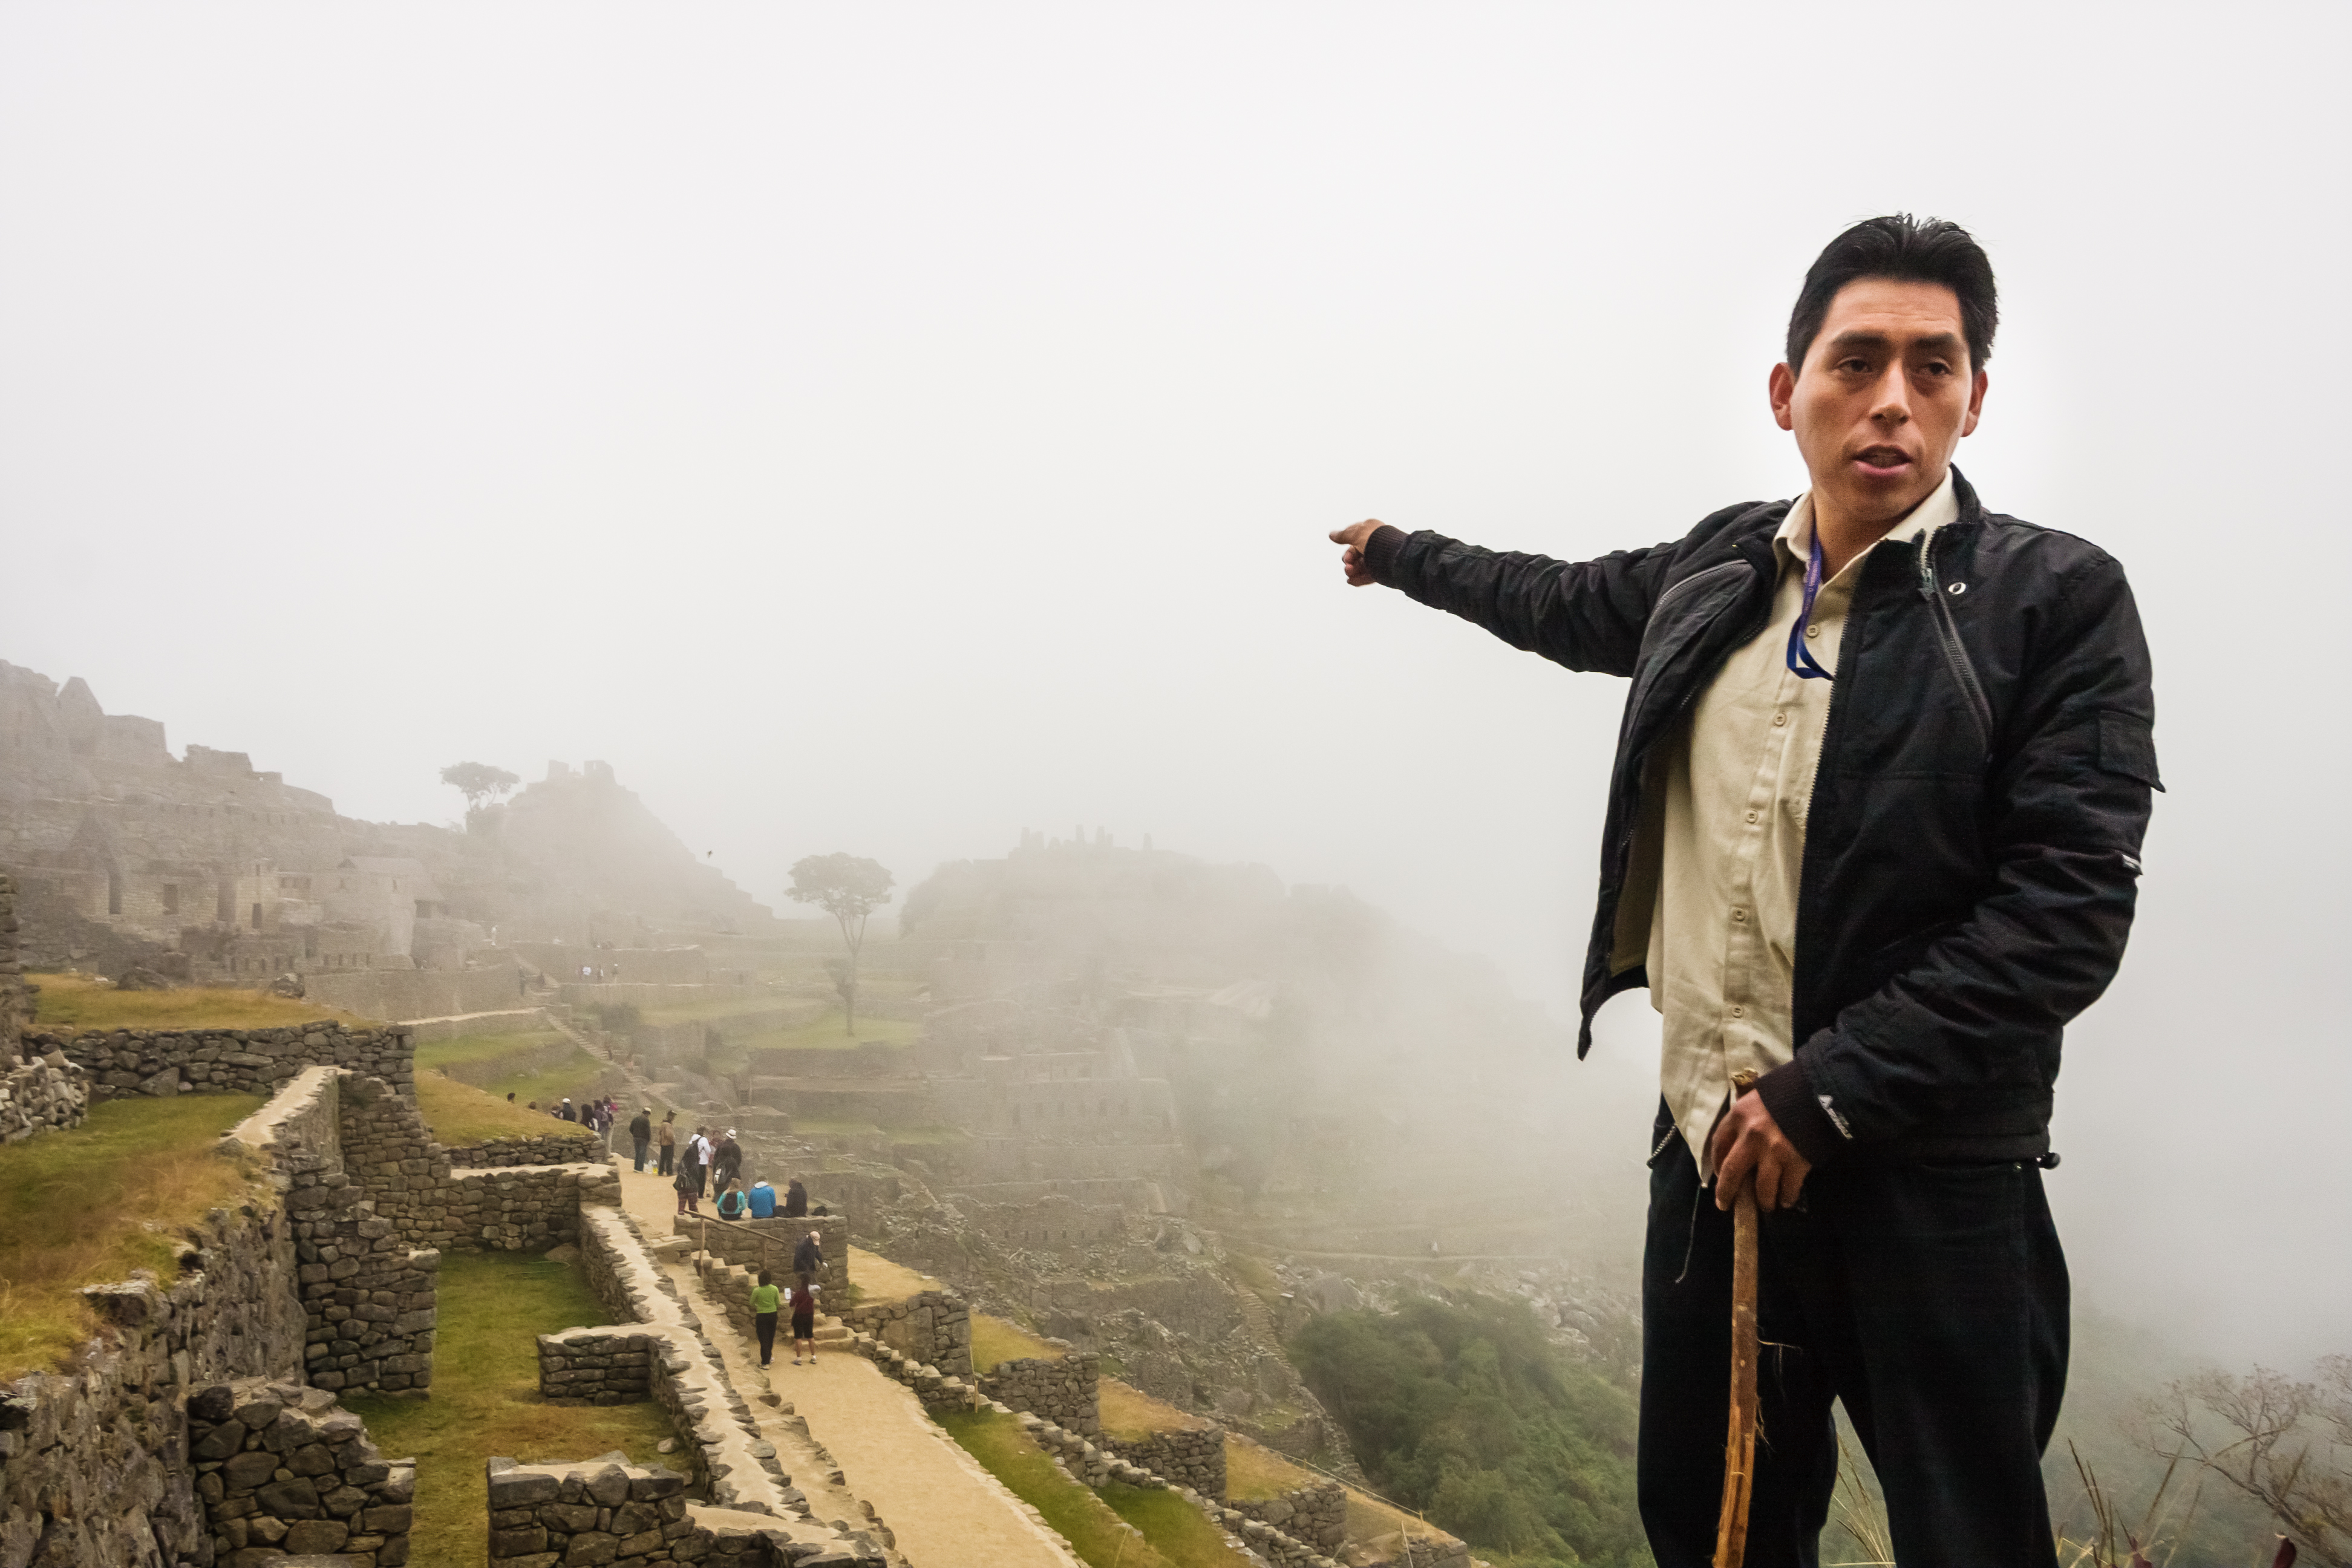 Having a guide at Machu Picchu helps add to your understanding of this mysterious site.  Here, Apus Peru guide Herbert Saldivar  helps point out the different landmarks in the fog. Photo by Isaiah Brookshire.